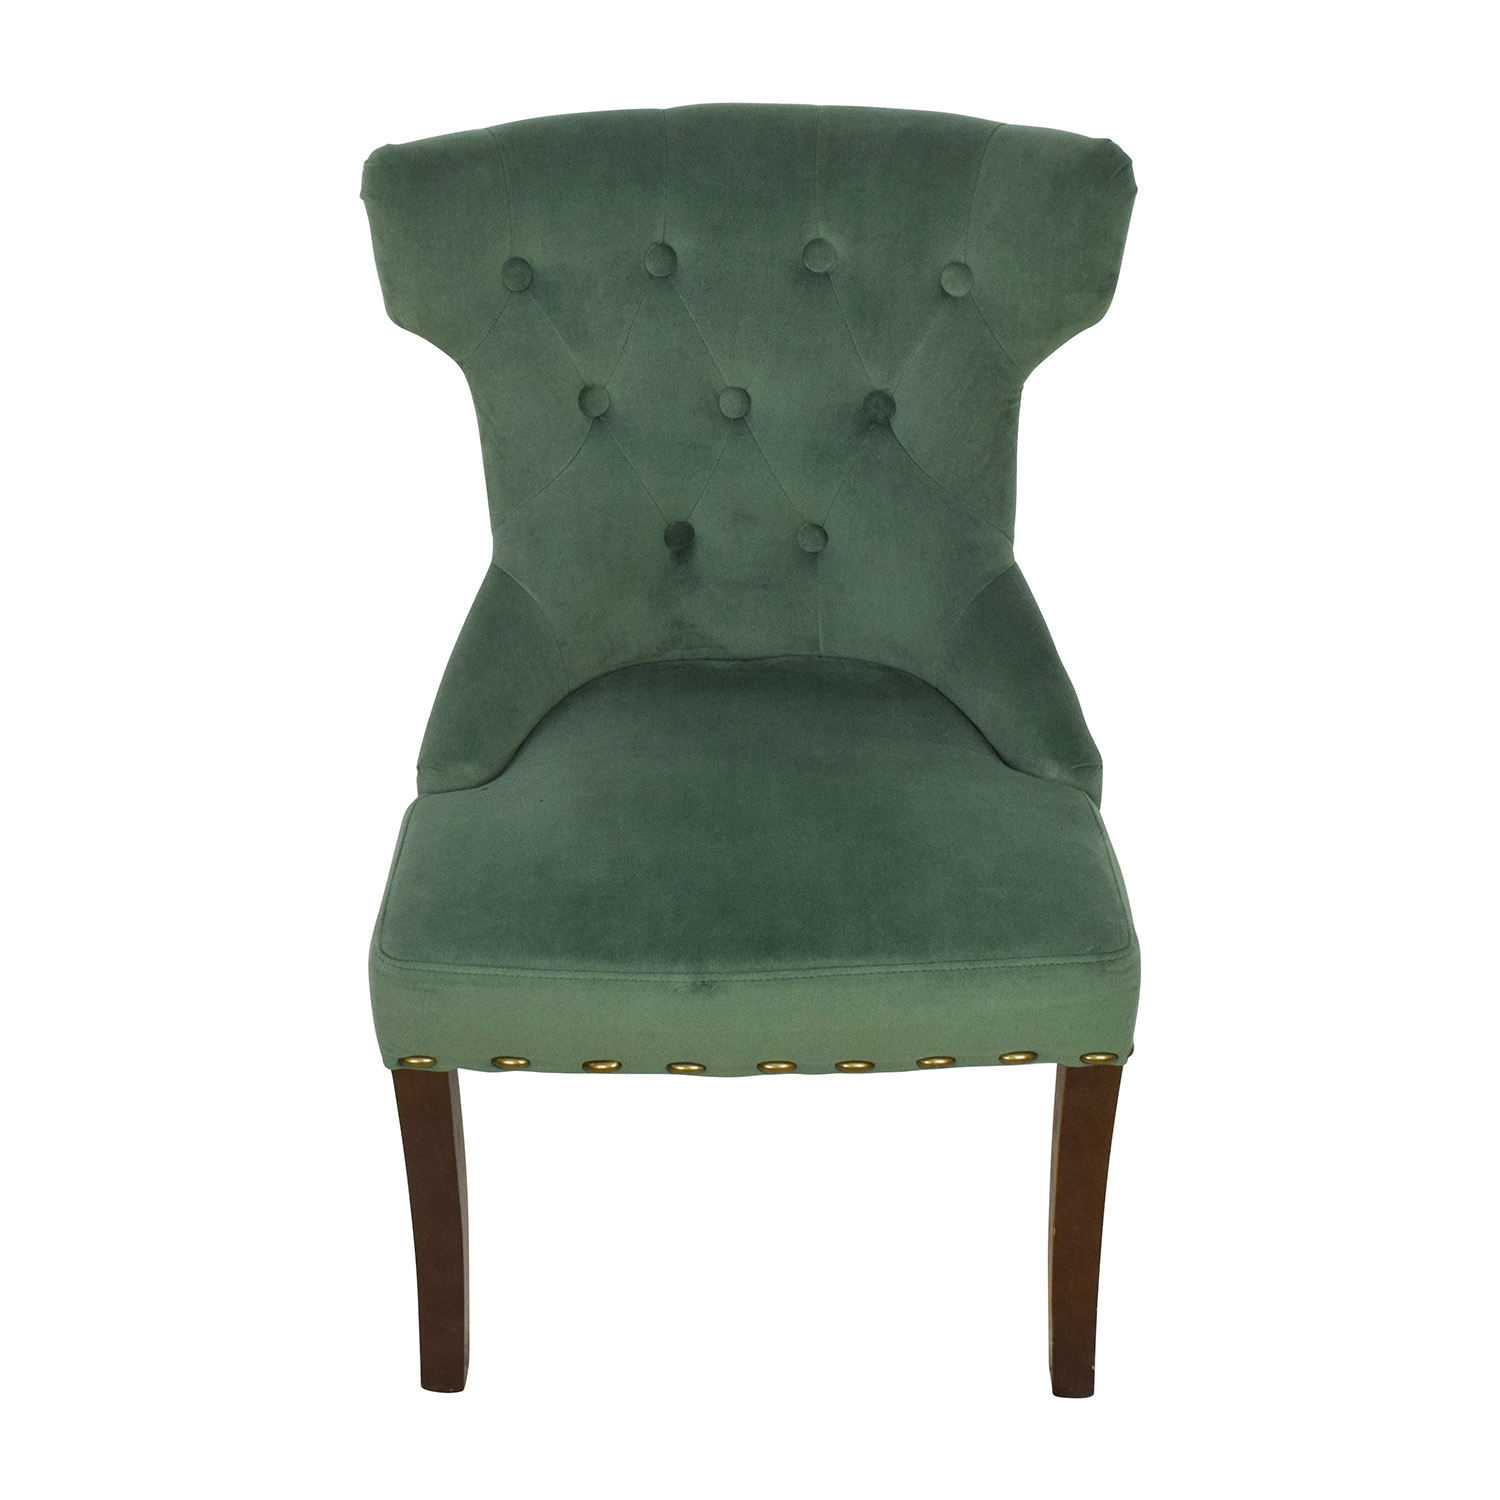 65 Off Pier 1 Pier 1 Imports Hourglass Collection Chair